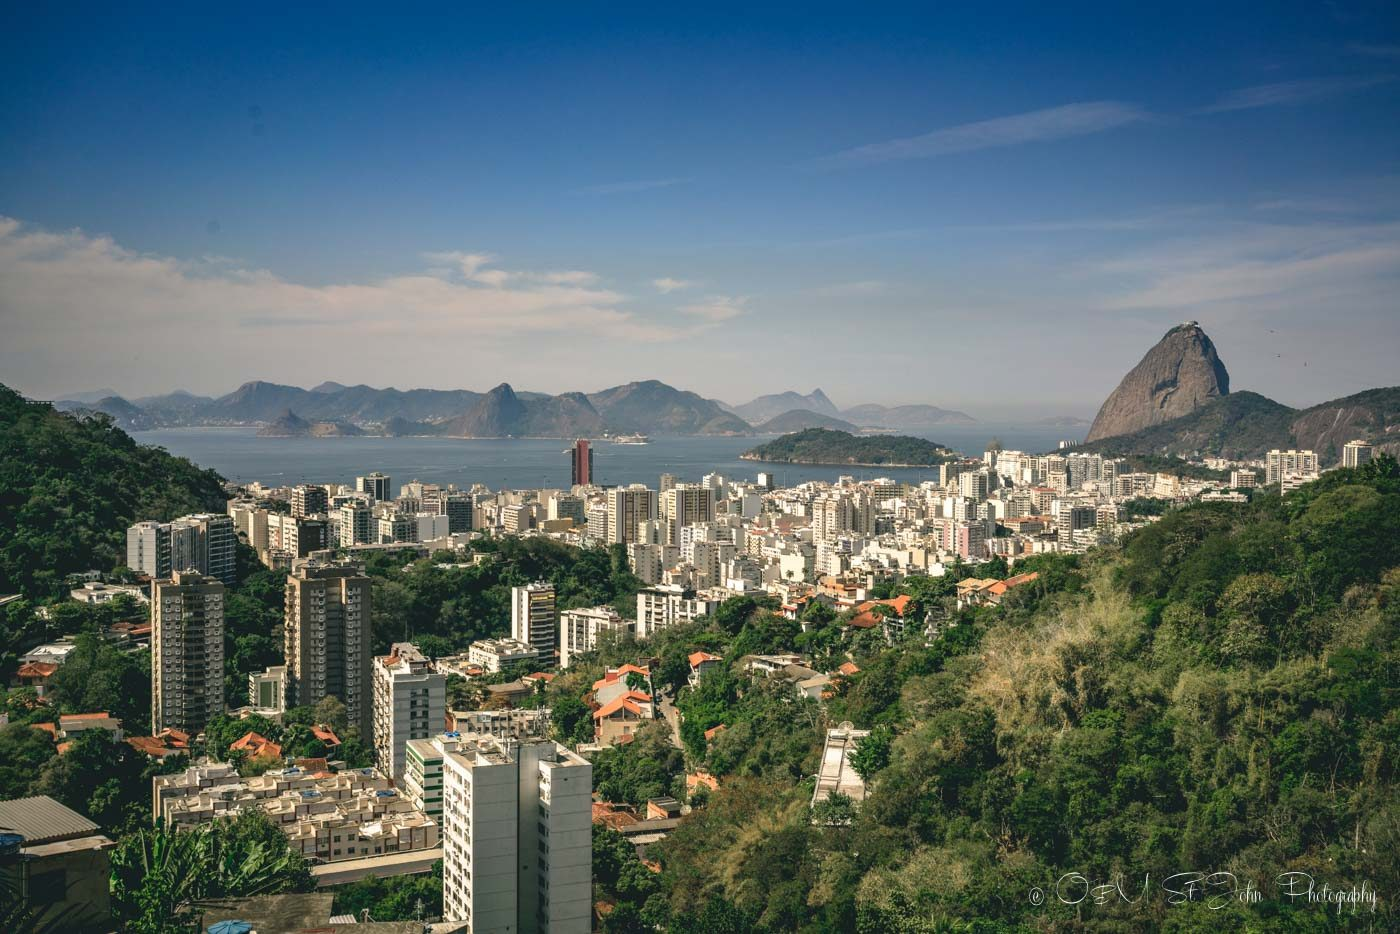 View of the Sugarloaf Mountain in Rio de Janeiro, Brazil